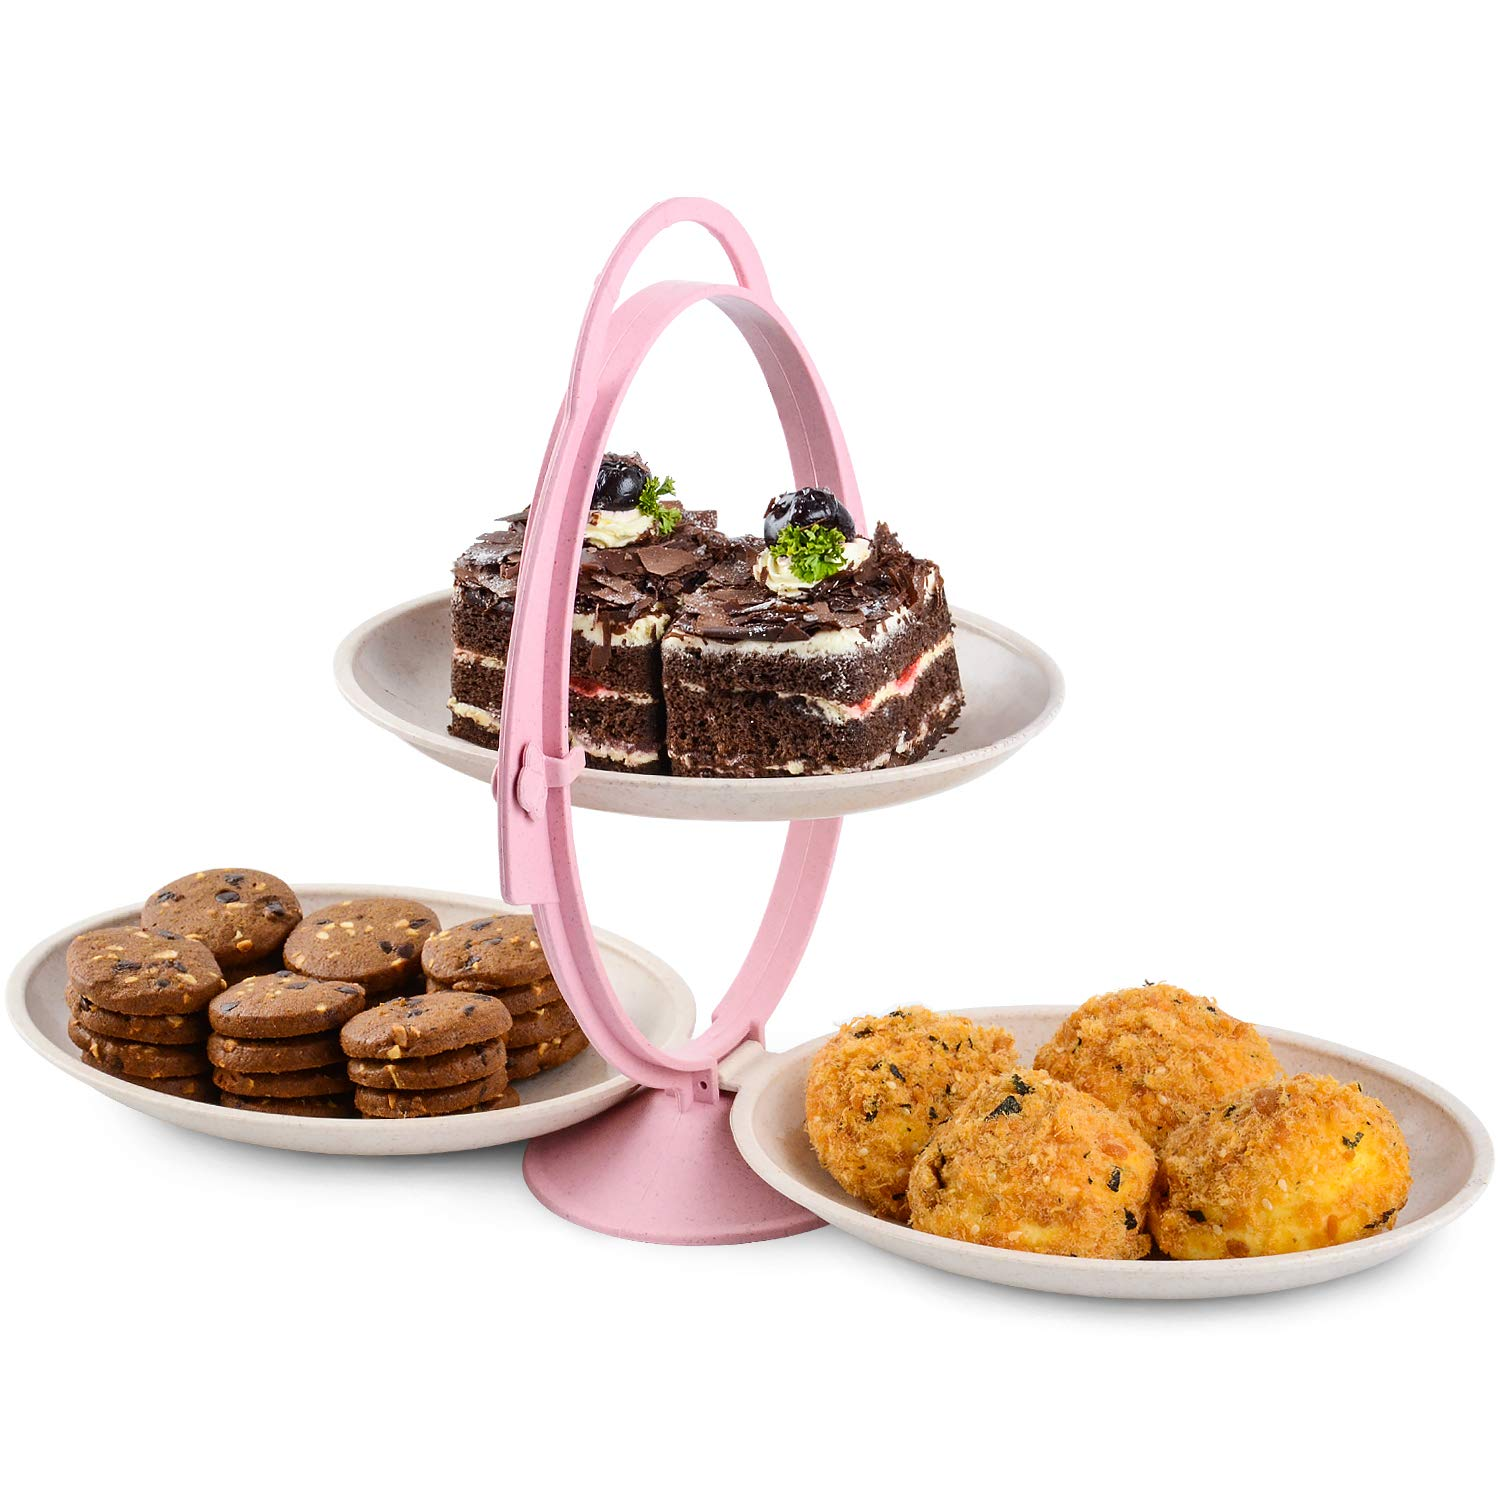 Cupcake Stand Dessert Plates,WorldBackyard Wheat Straw 2-Tier 3 Serving Tray Display Tower for Kids Birthday Tea Party Baby Shower with Handle on Top.